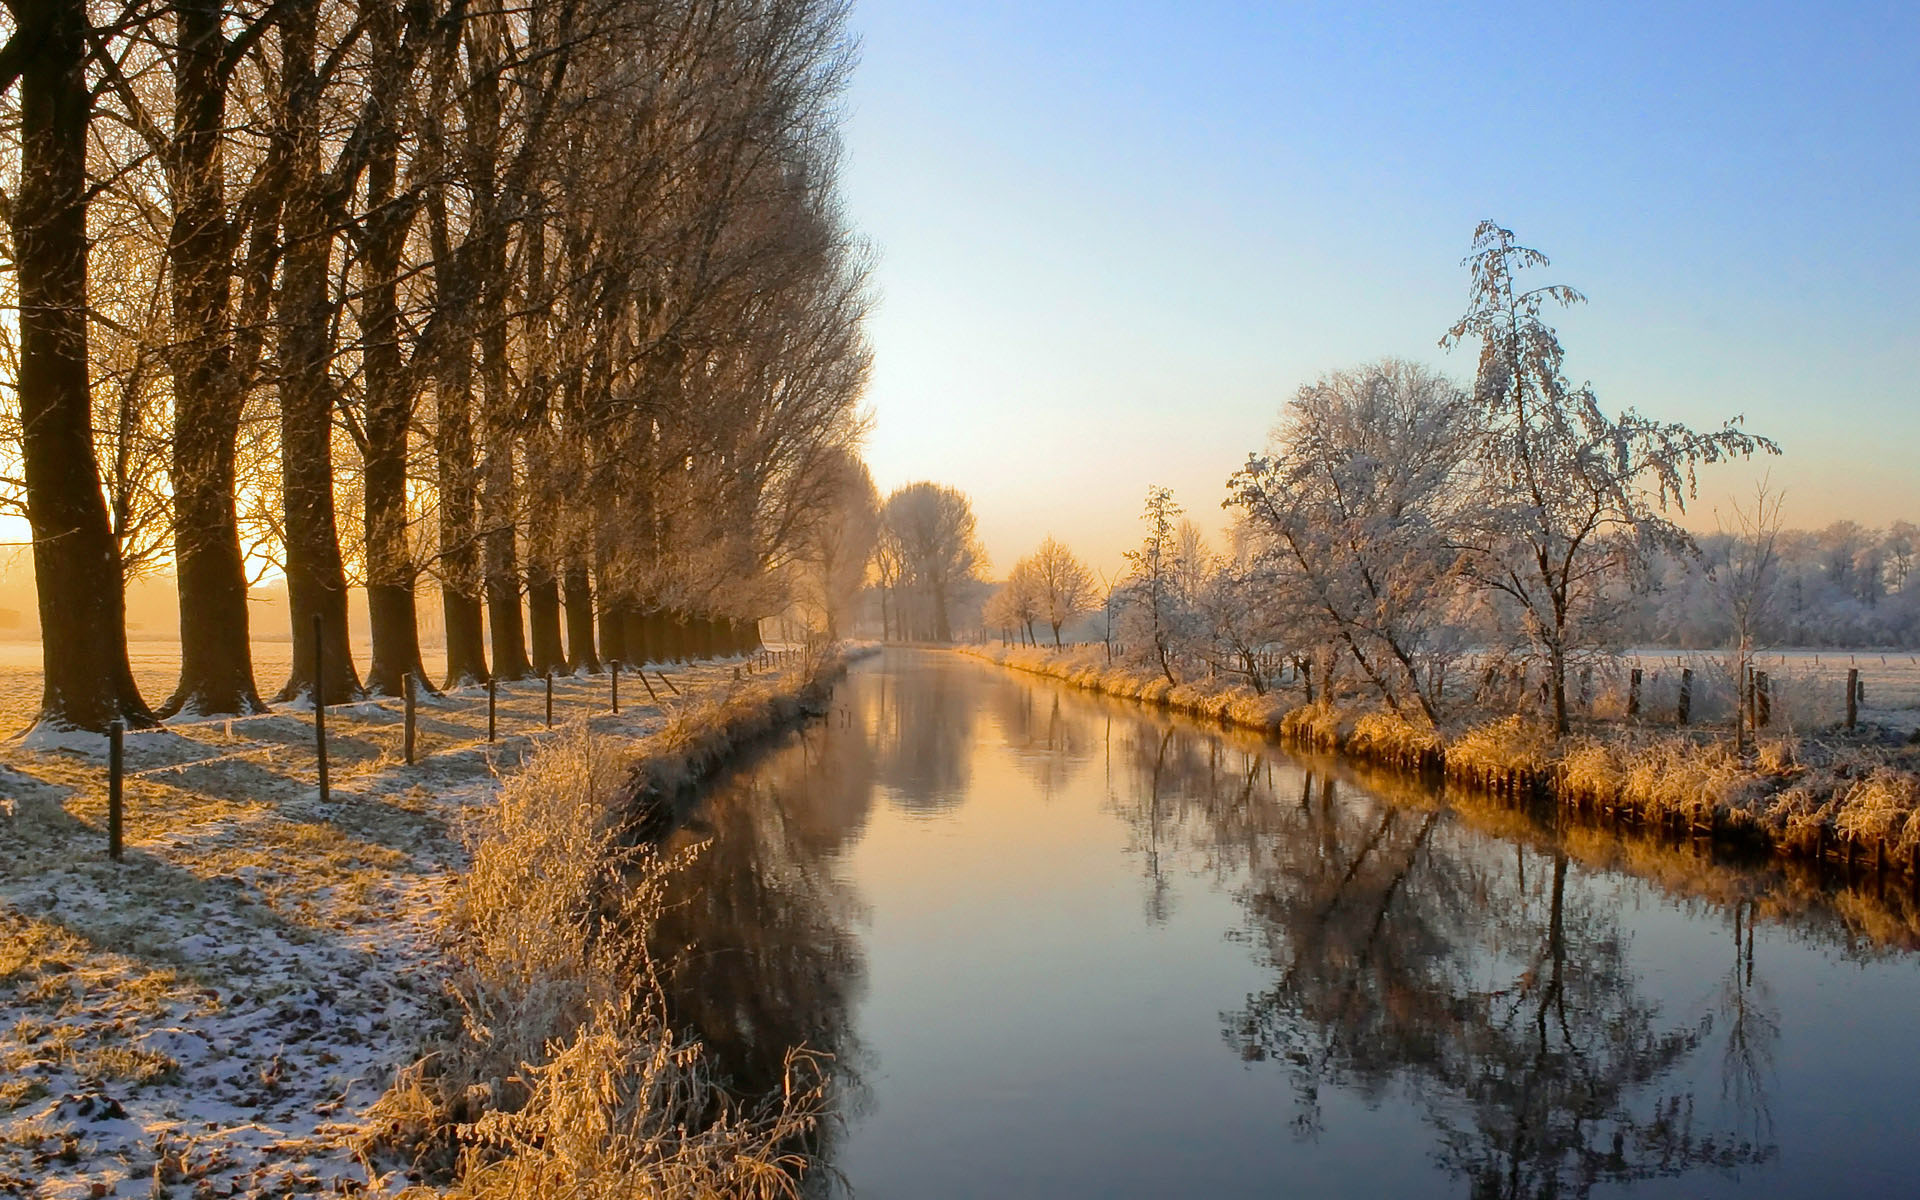 River Niers in the Niederrhein region, Germany